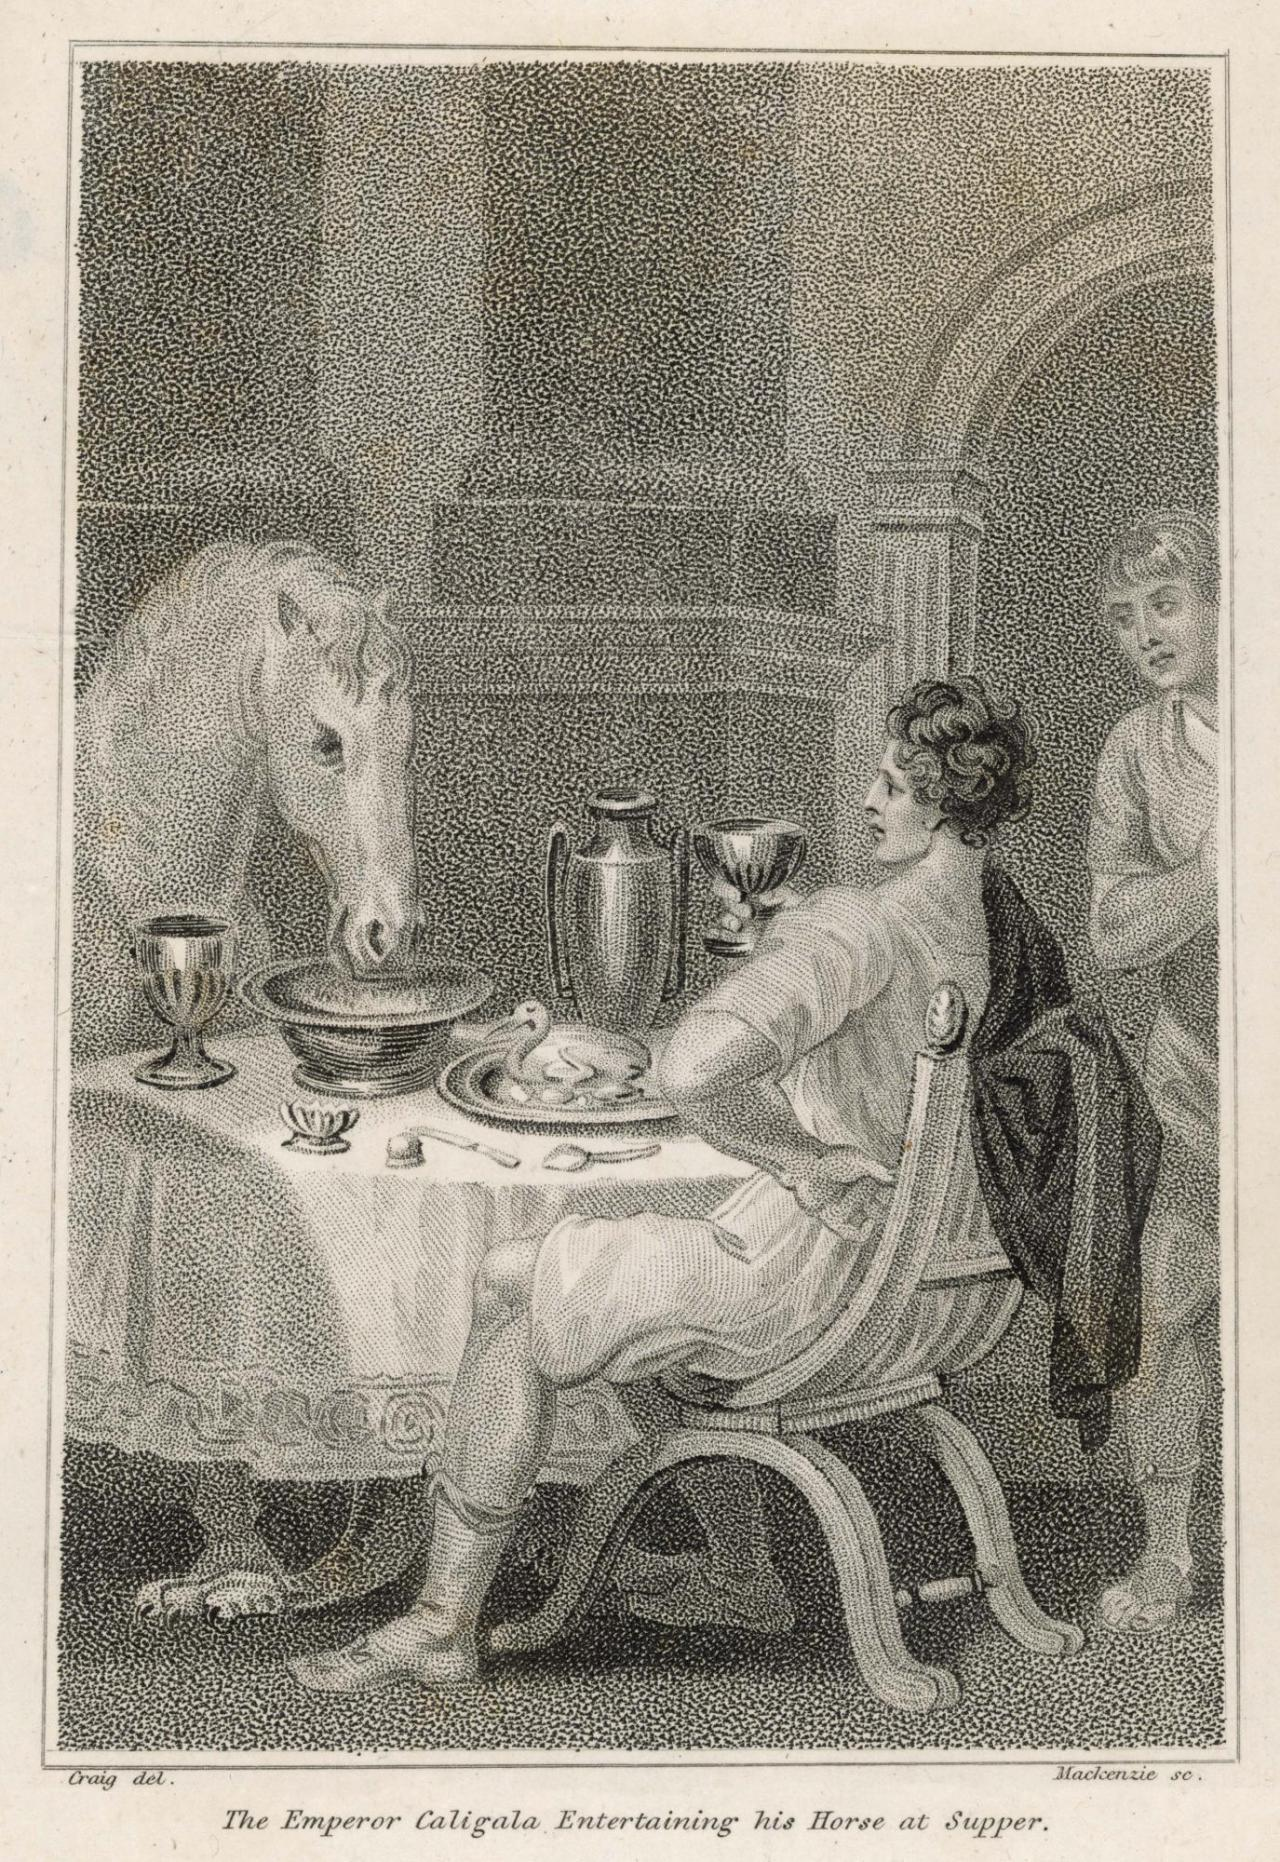 The Emperor Caligula Entertaining his Horse at Supper